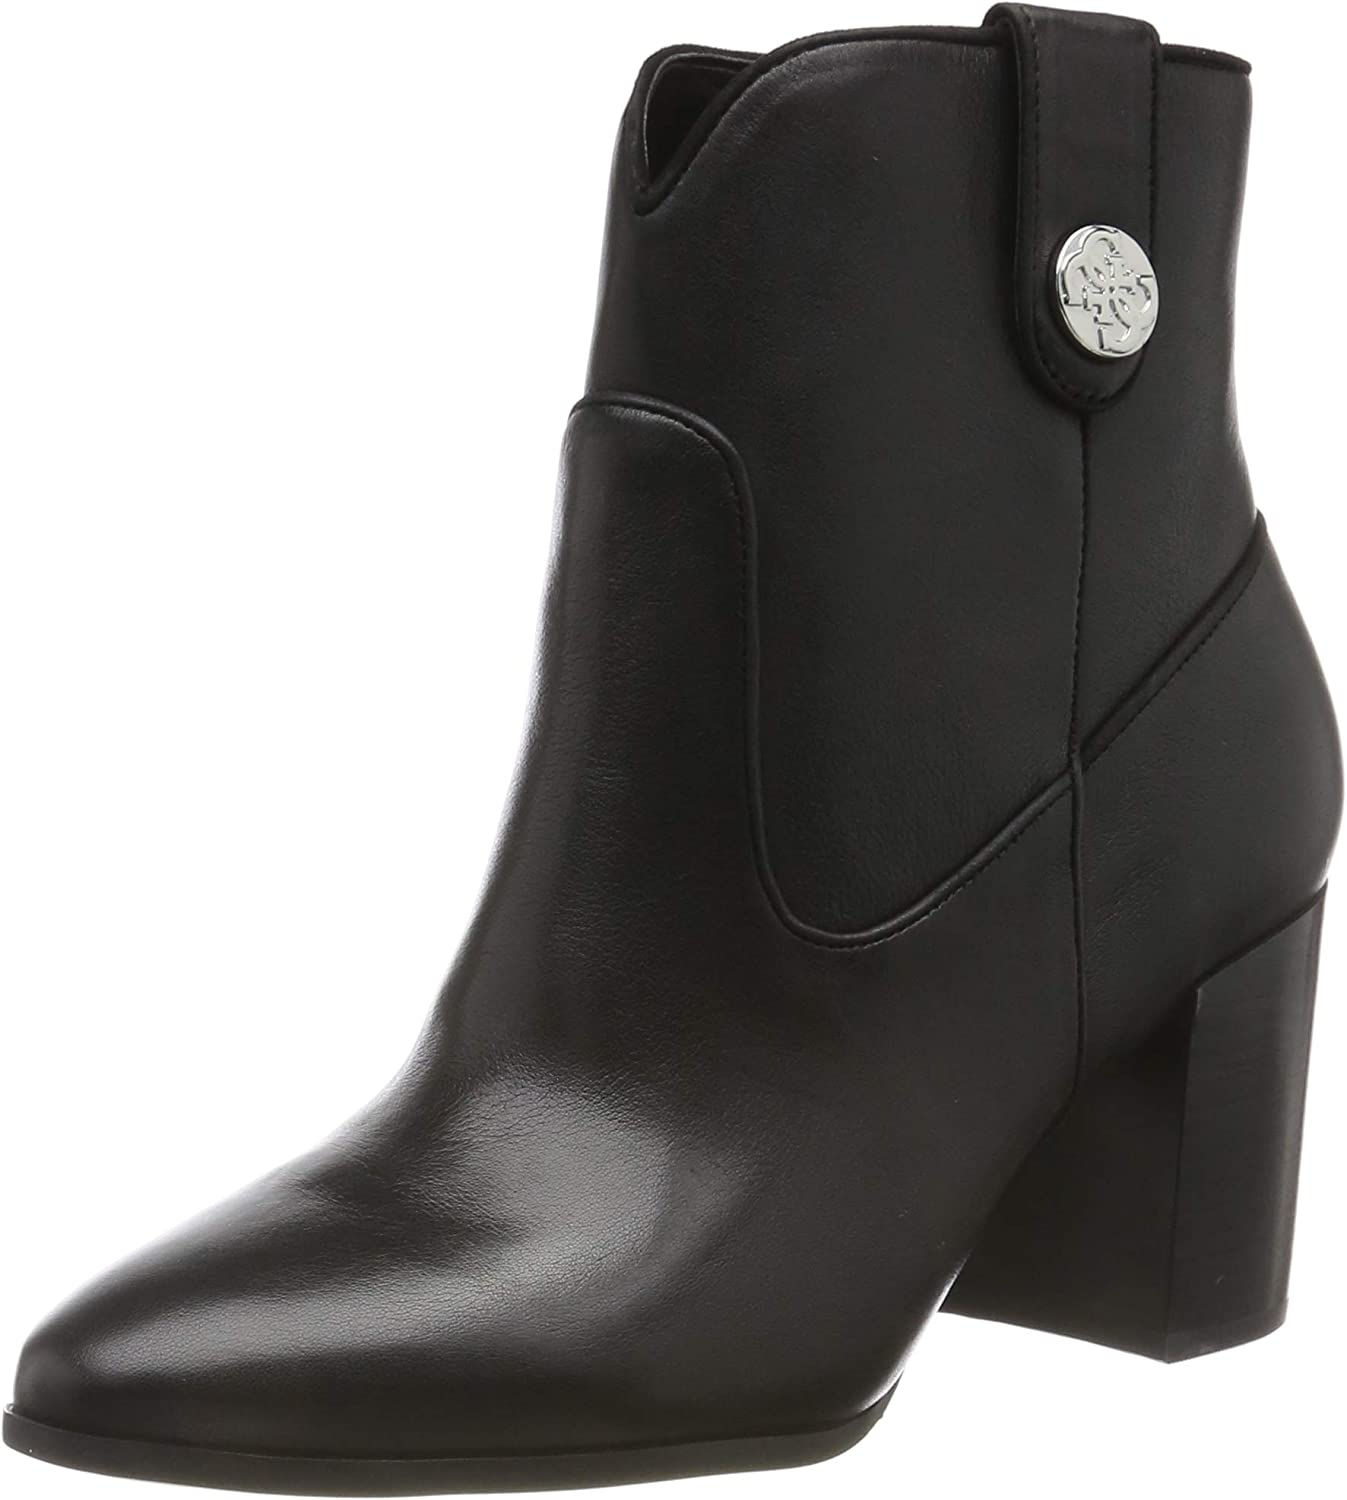 Guess Cypher/Stivaletto (Bootie)/Lea, Botines para Mujer